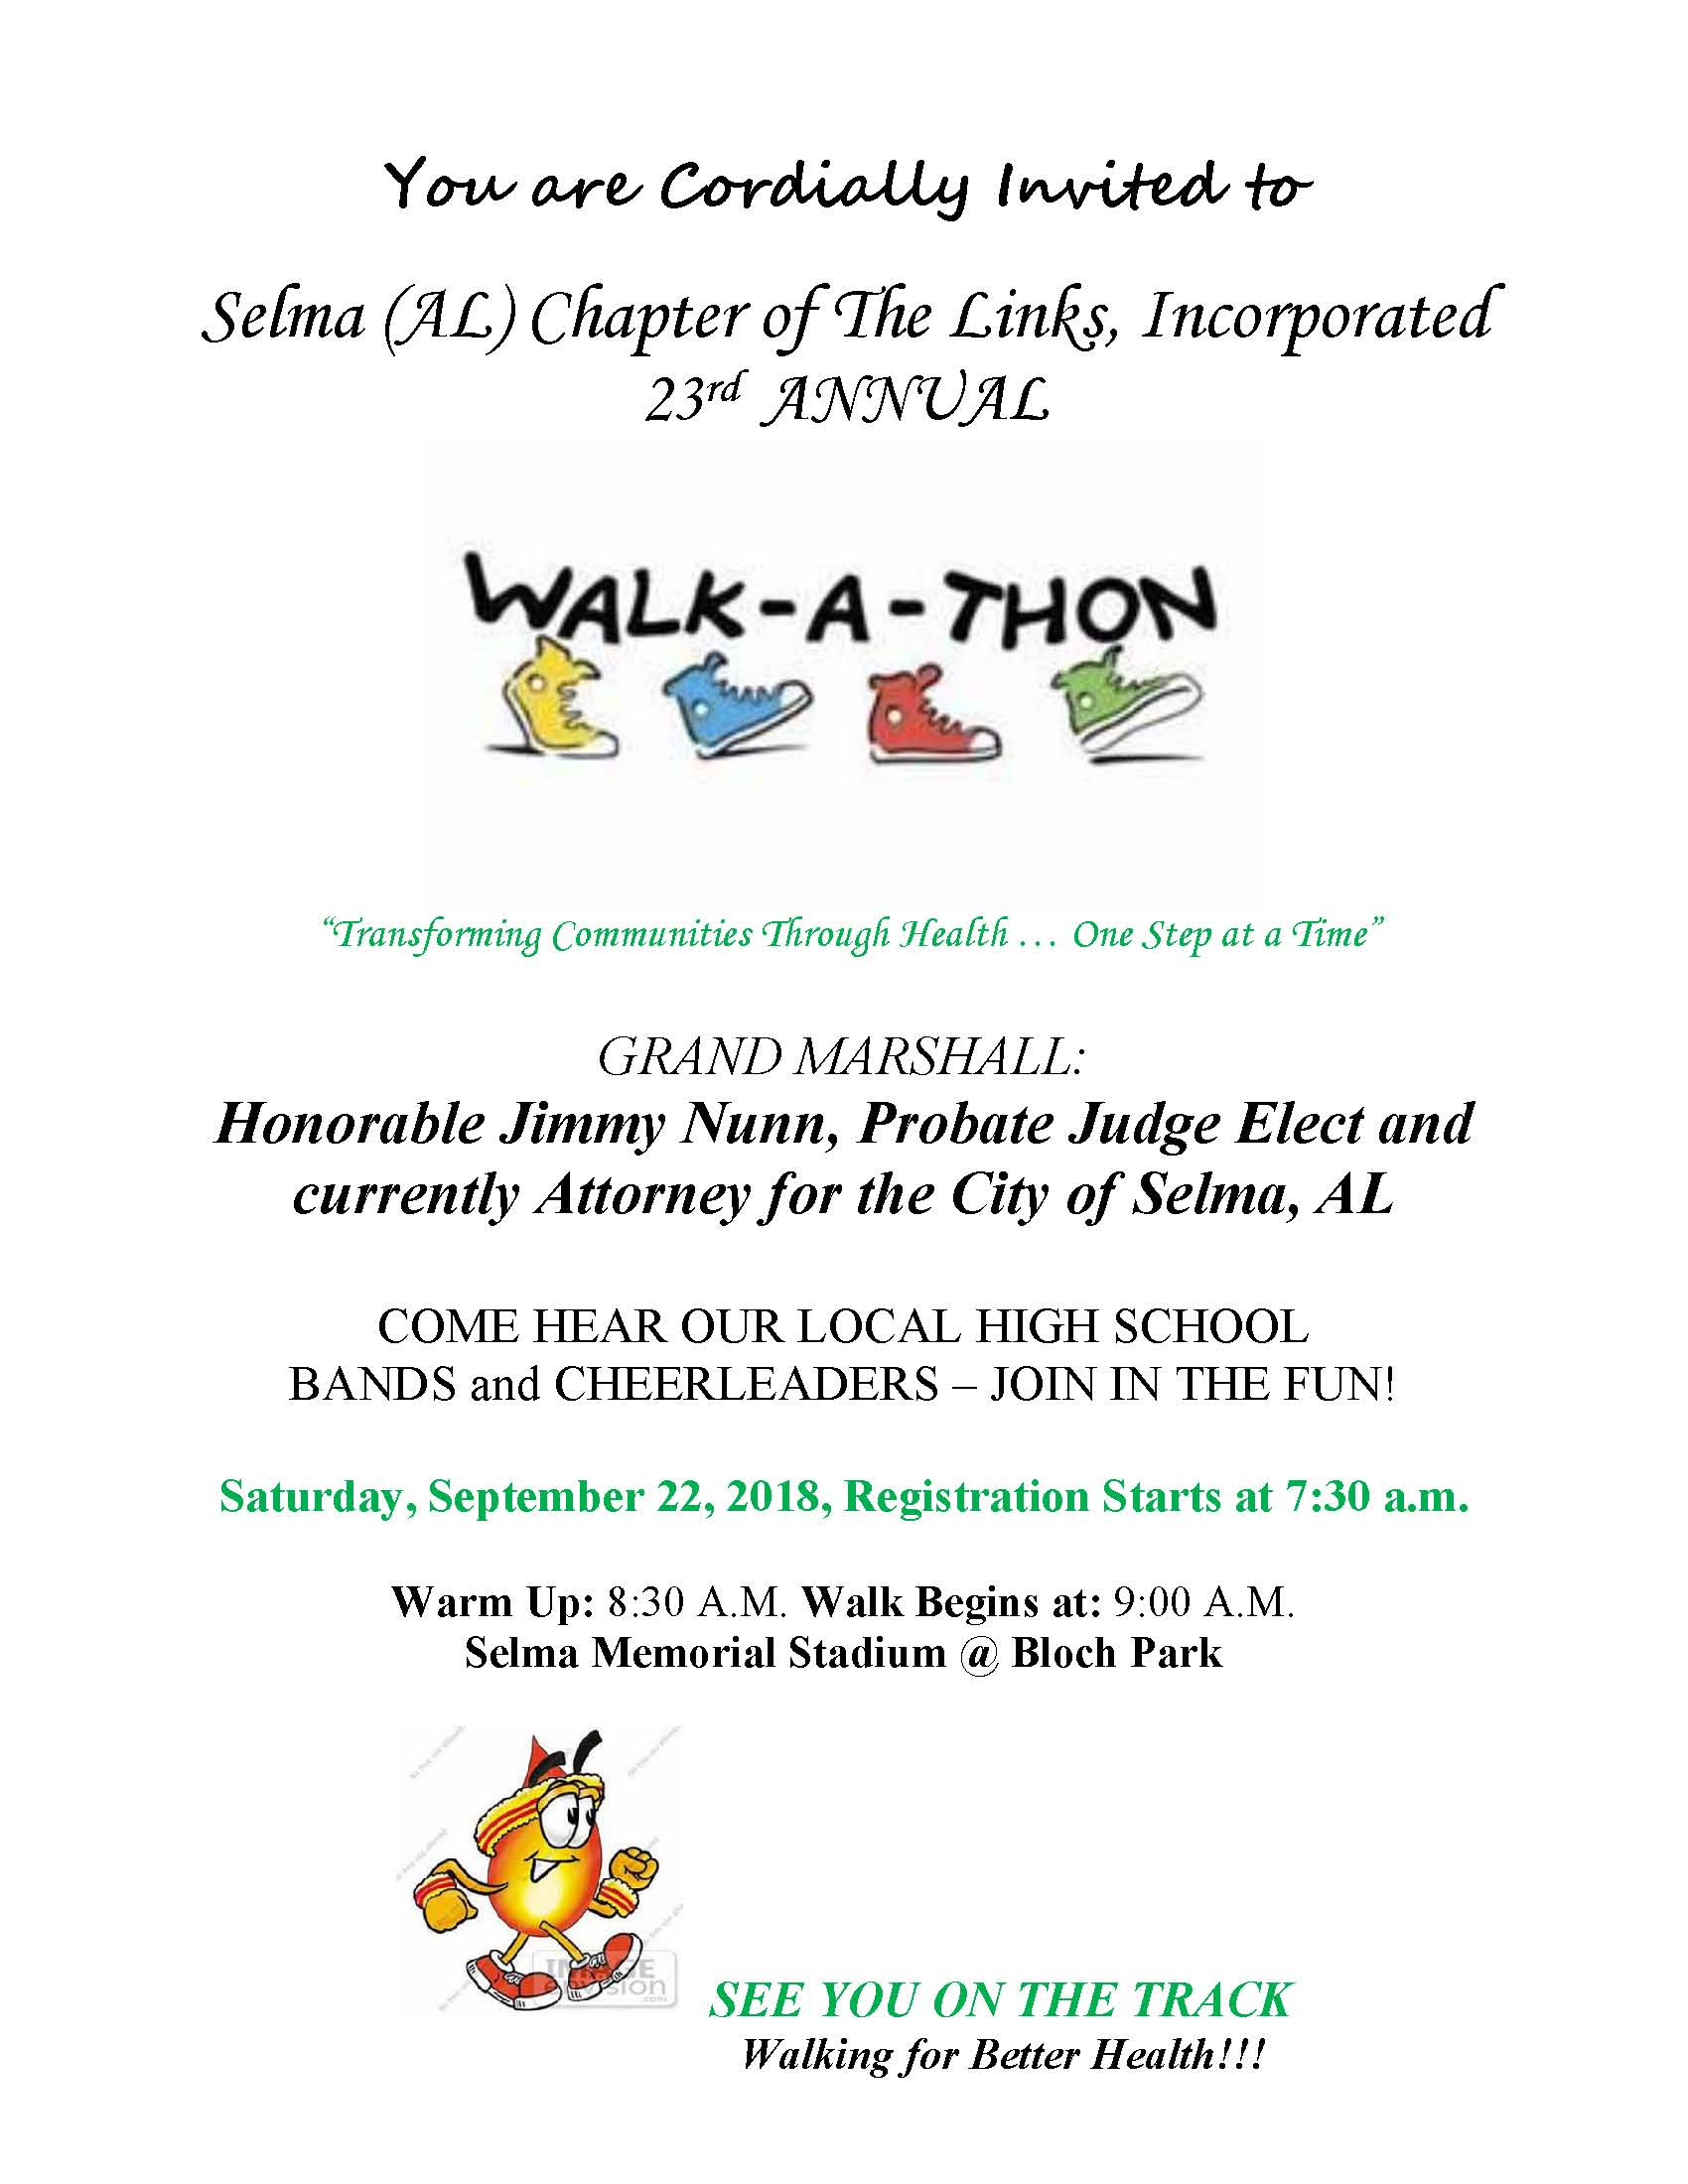 Links Walk a Thon Flyer 092018